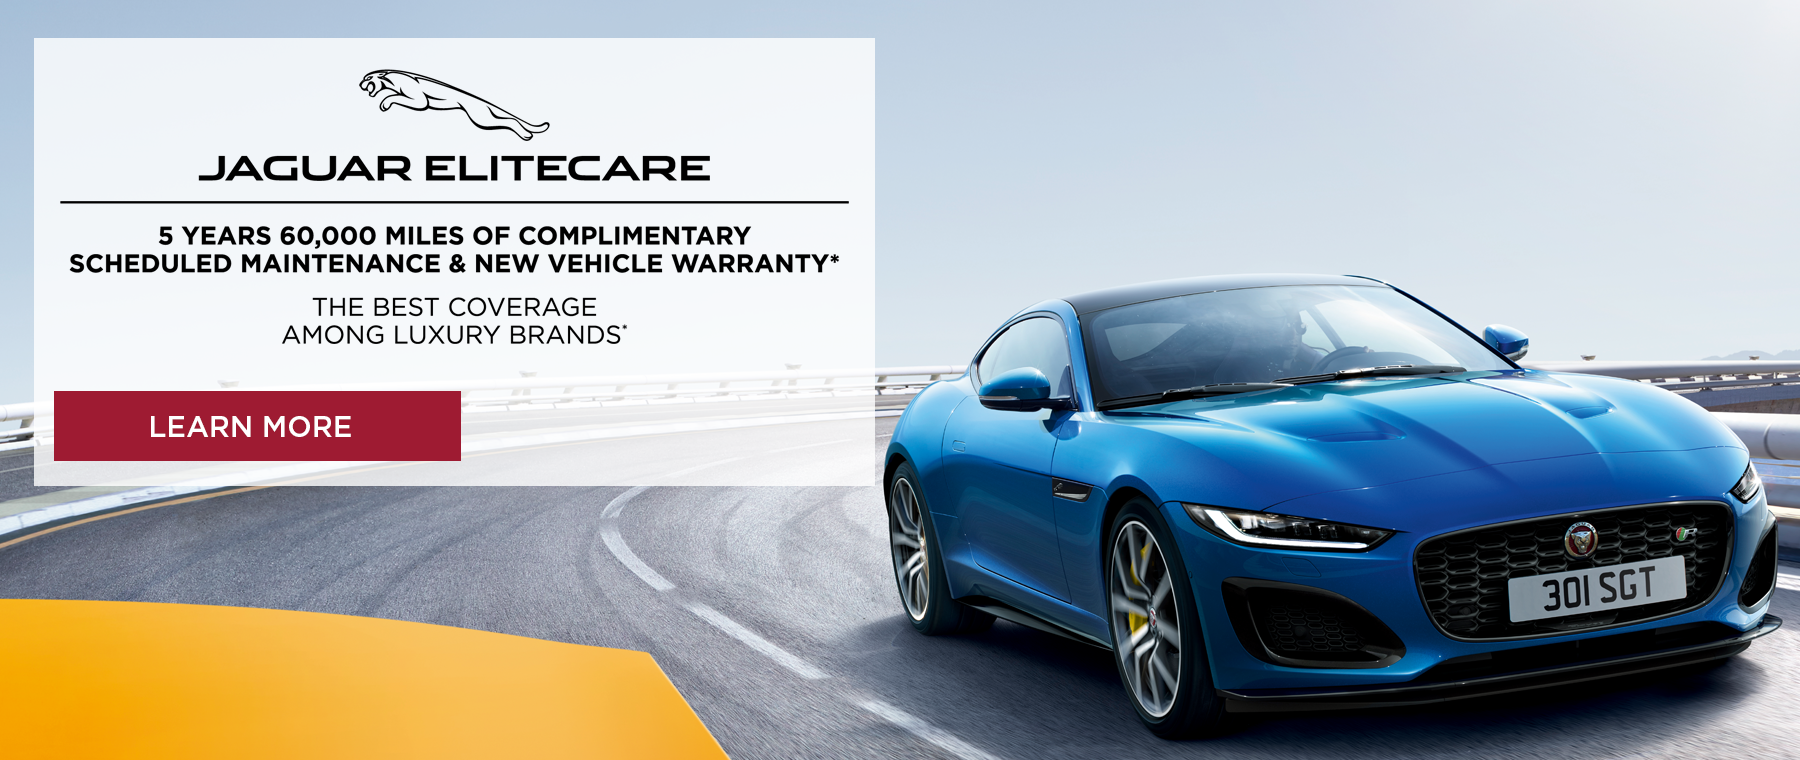 Jaguar Elitecare Advantage. Best coverage among luxury brands. Click to learn more.